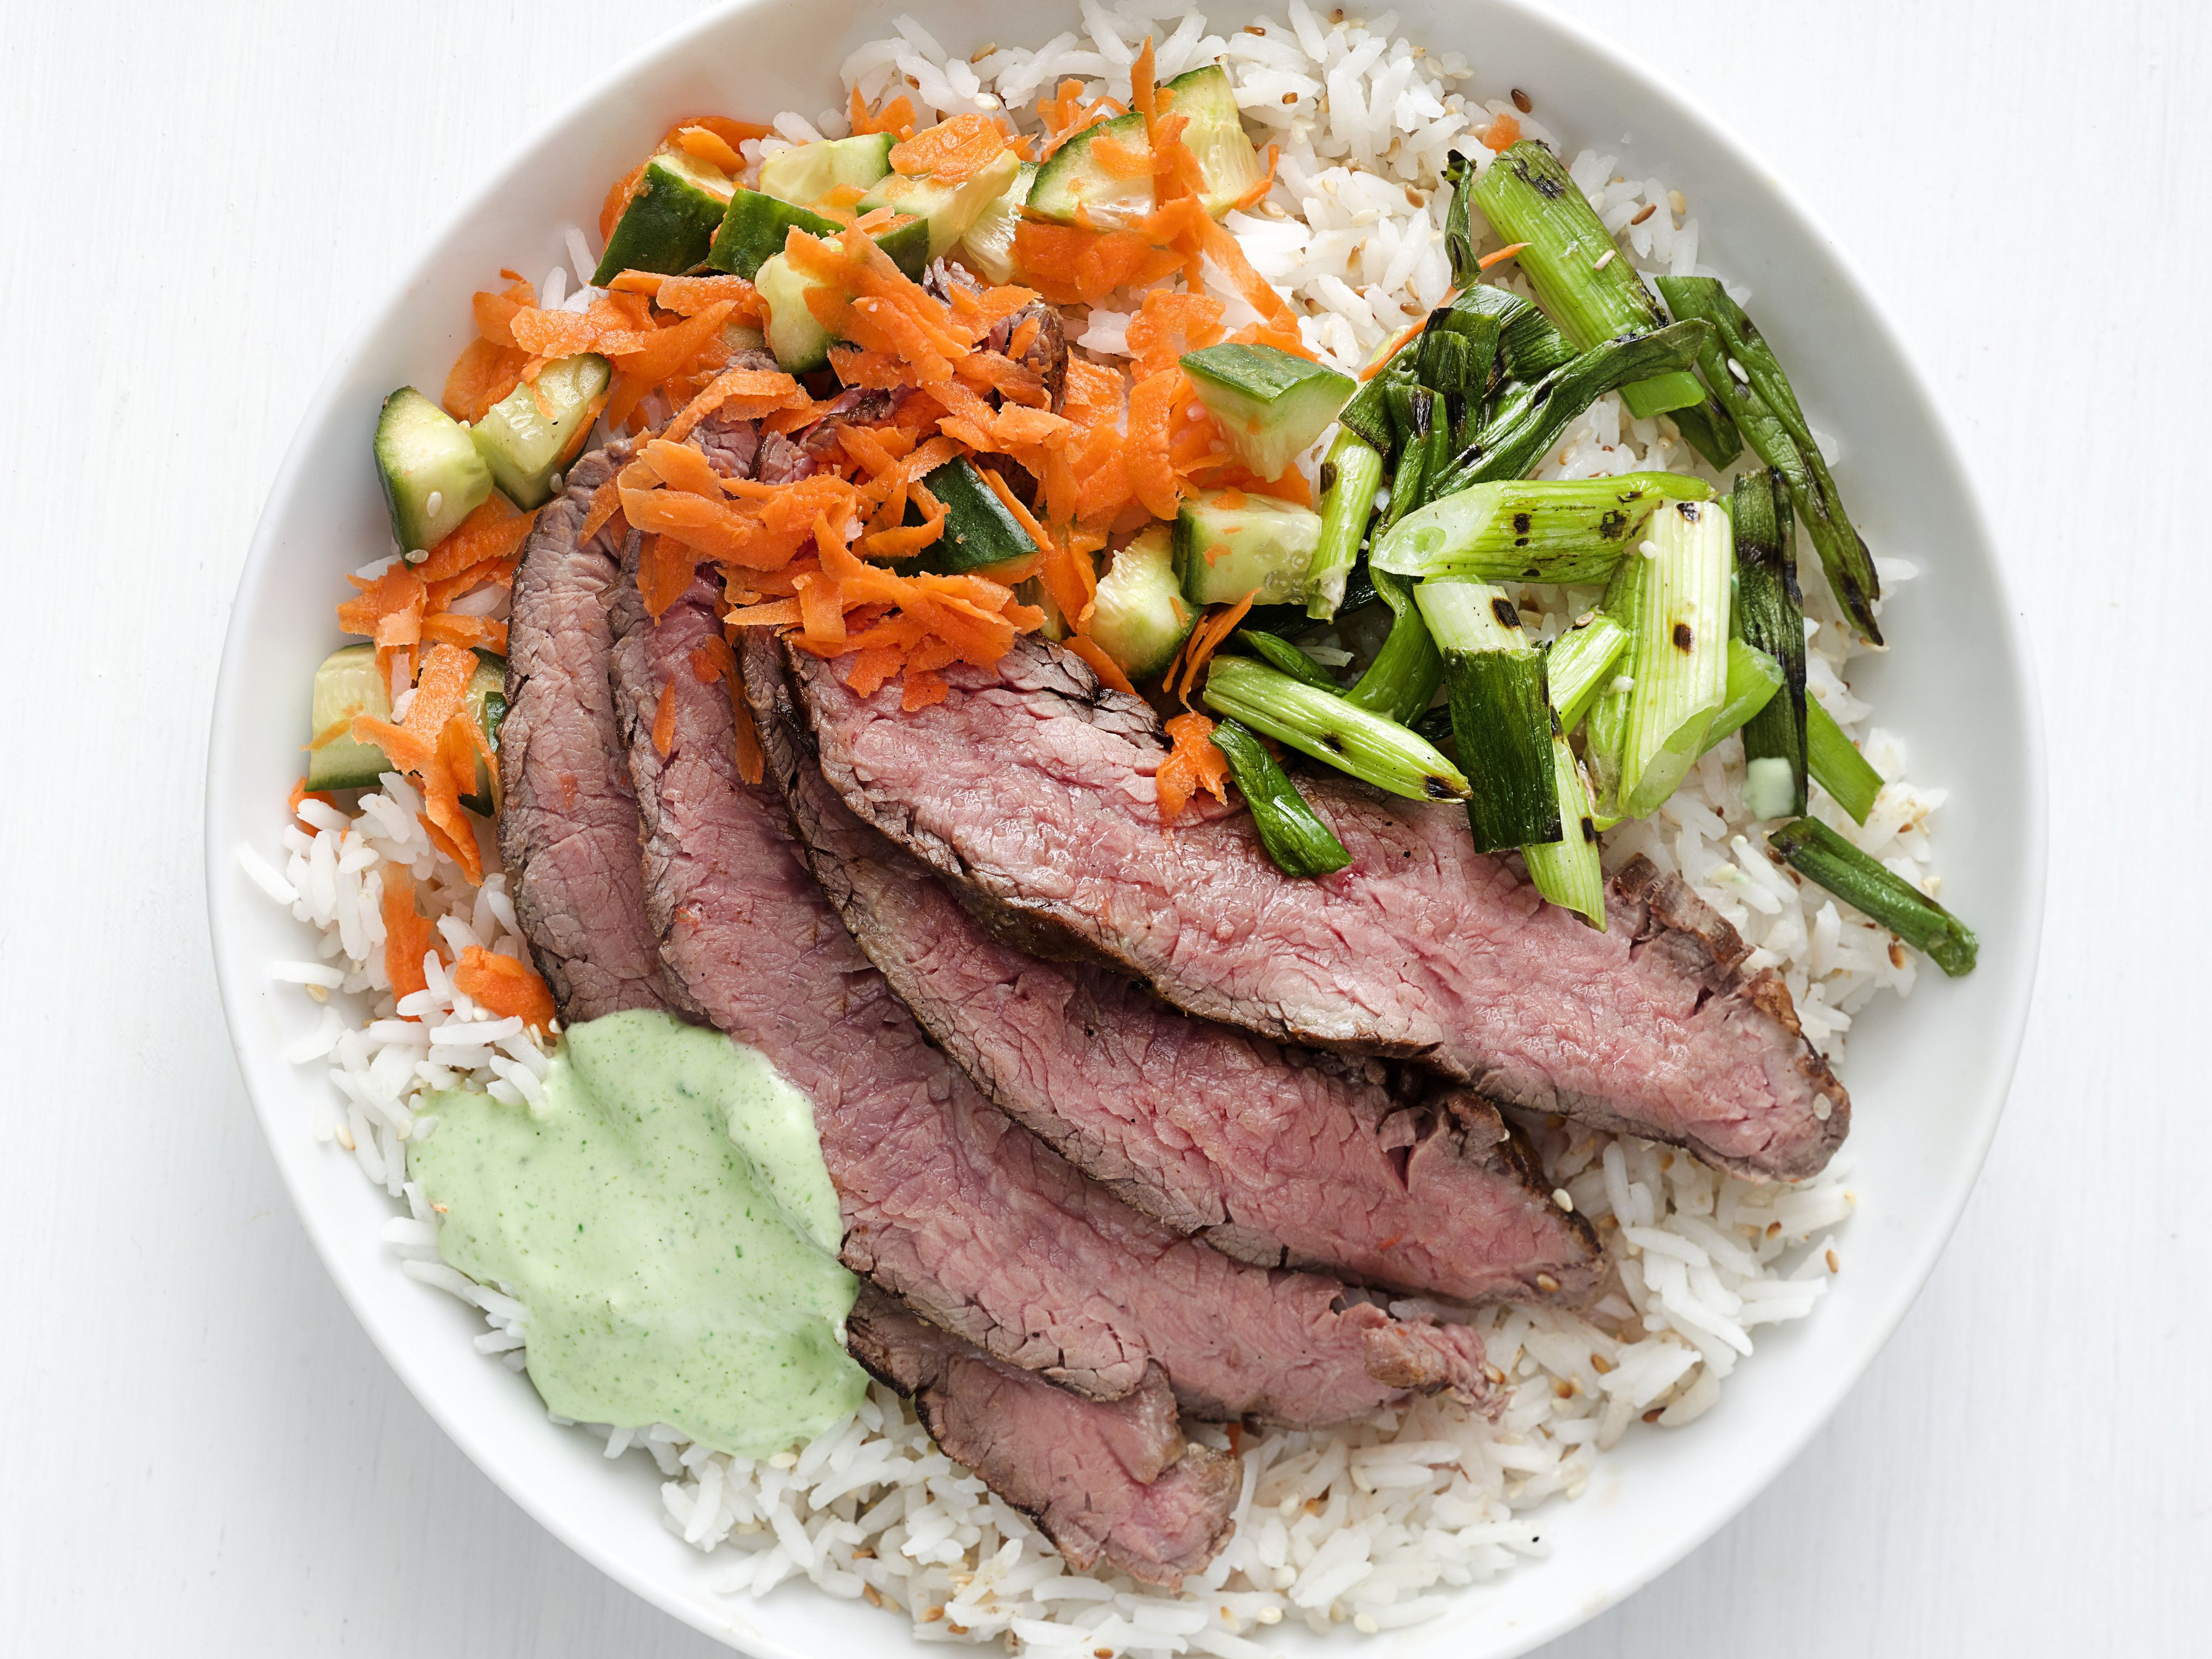 Grilled steak and rice bowl recipe grilled steaks rice bowls grilled steak and rice bowl forumfinder Image collections